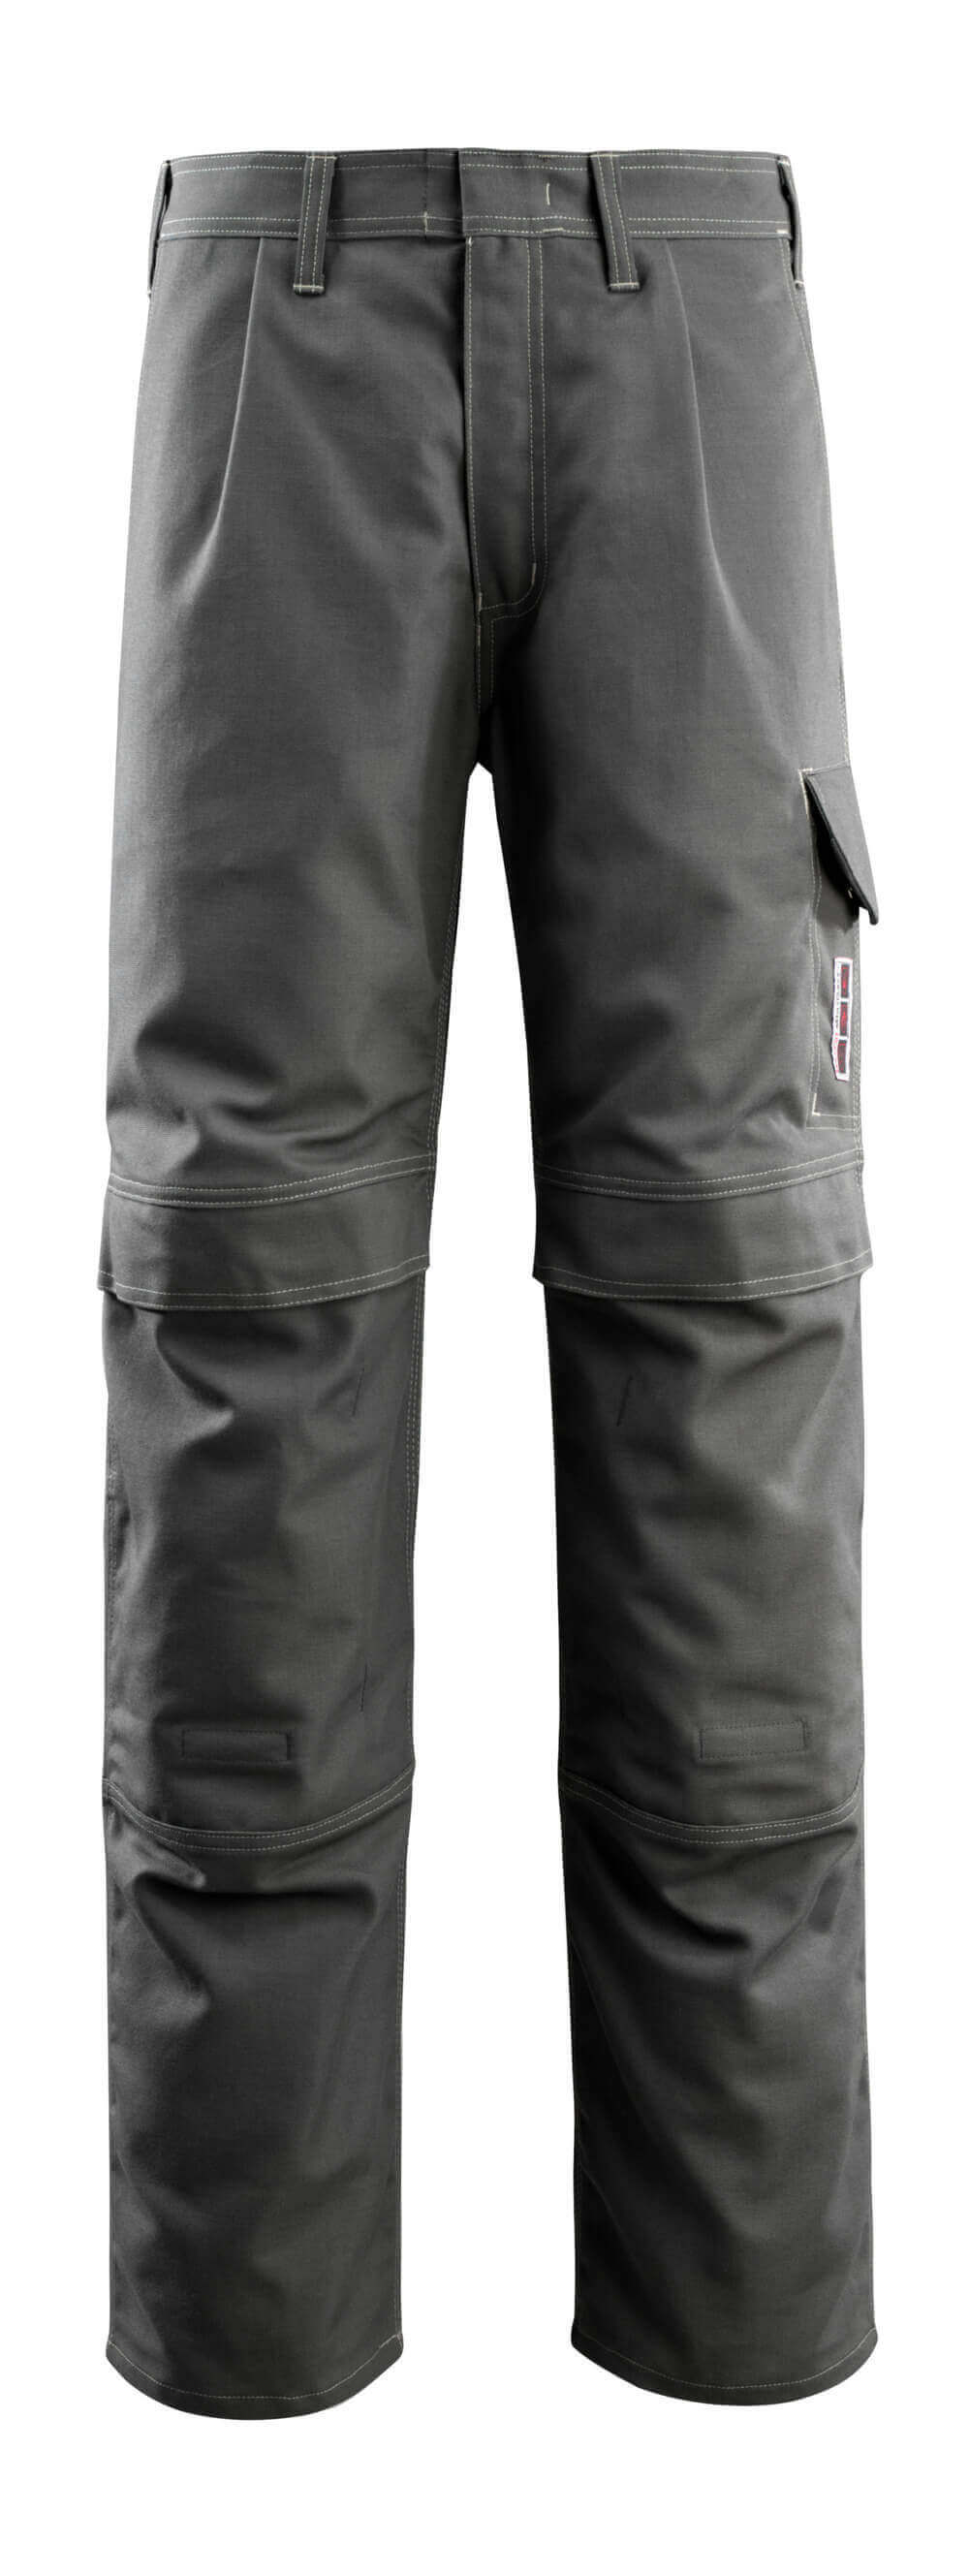 06679-135-18 Trousers with kneepad pockets - dark anthracite